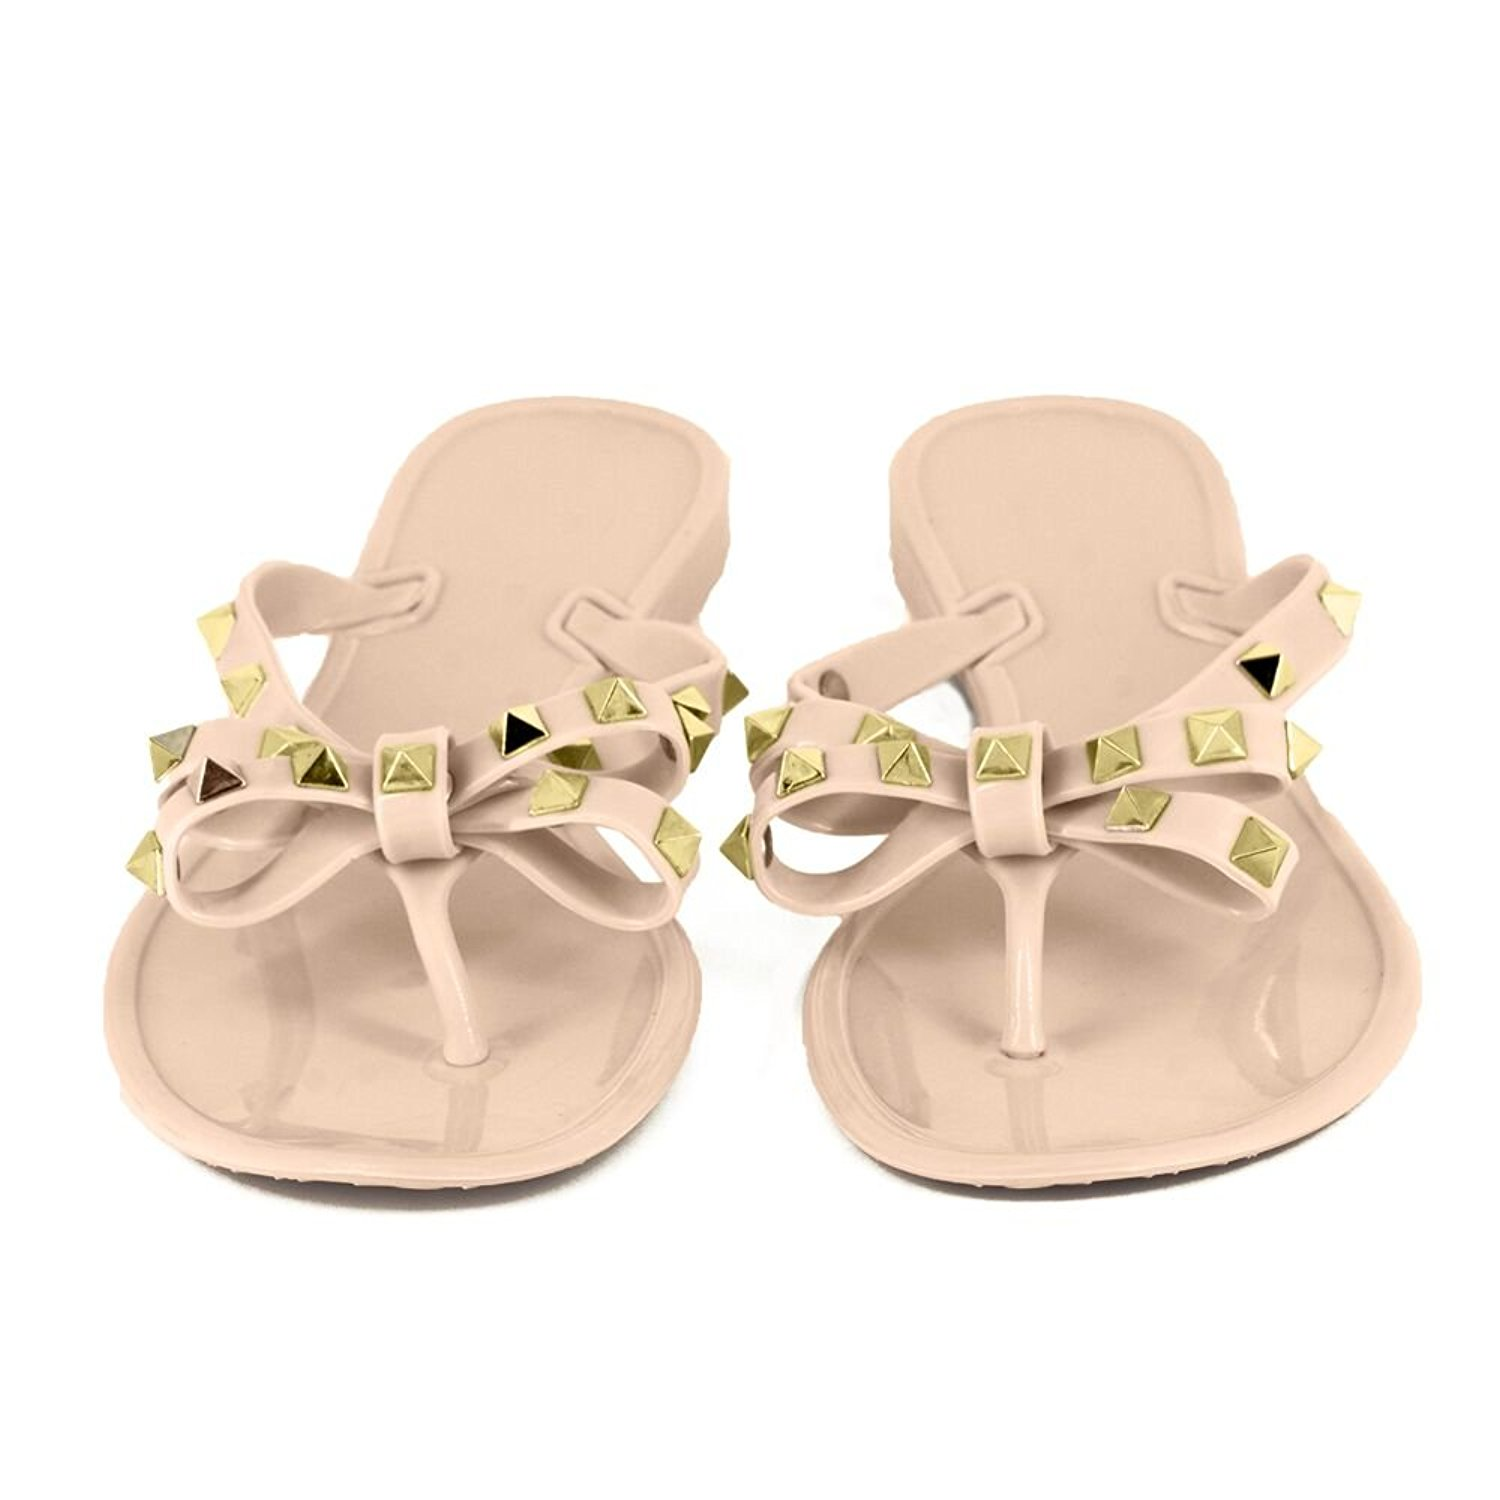 the best attitude c11ee 8bb78 Utop Women s Rivets Bowtie Flip Flops Jelly Thong Sandal Rubber Flat  Slipper Summer Beach Rain Shoes Womens Gold Rivet Studded Bow Jelly Thong  Flip Flop ...